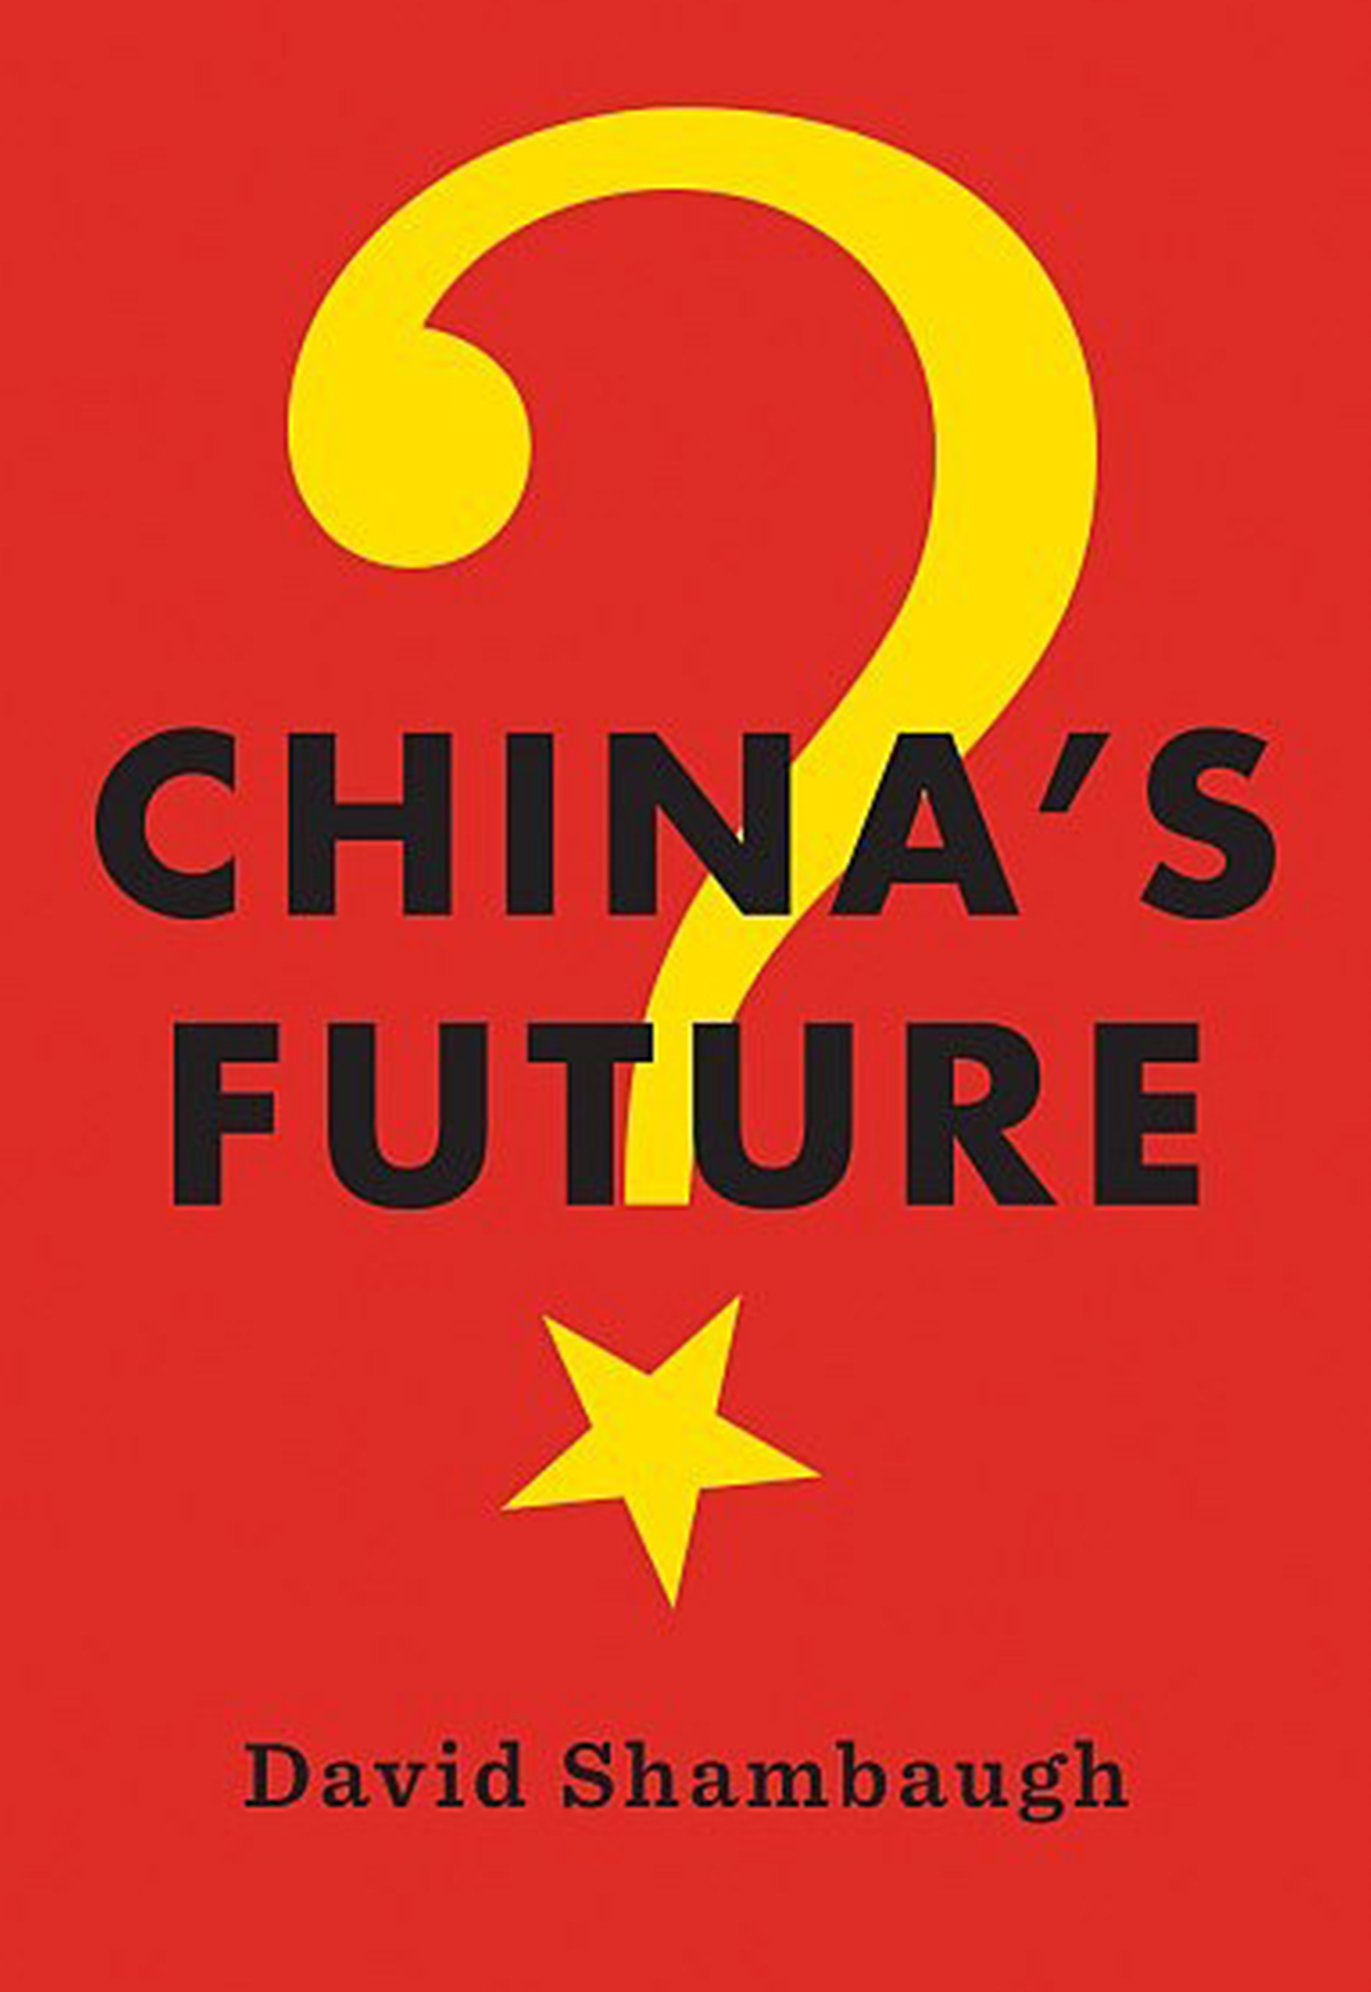 book cover: China's Future, David Shambaugh, a question mark with a star as the point underneath it